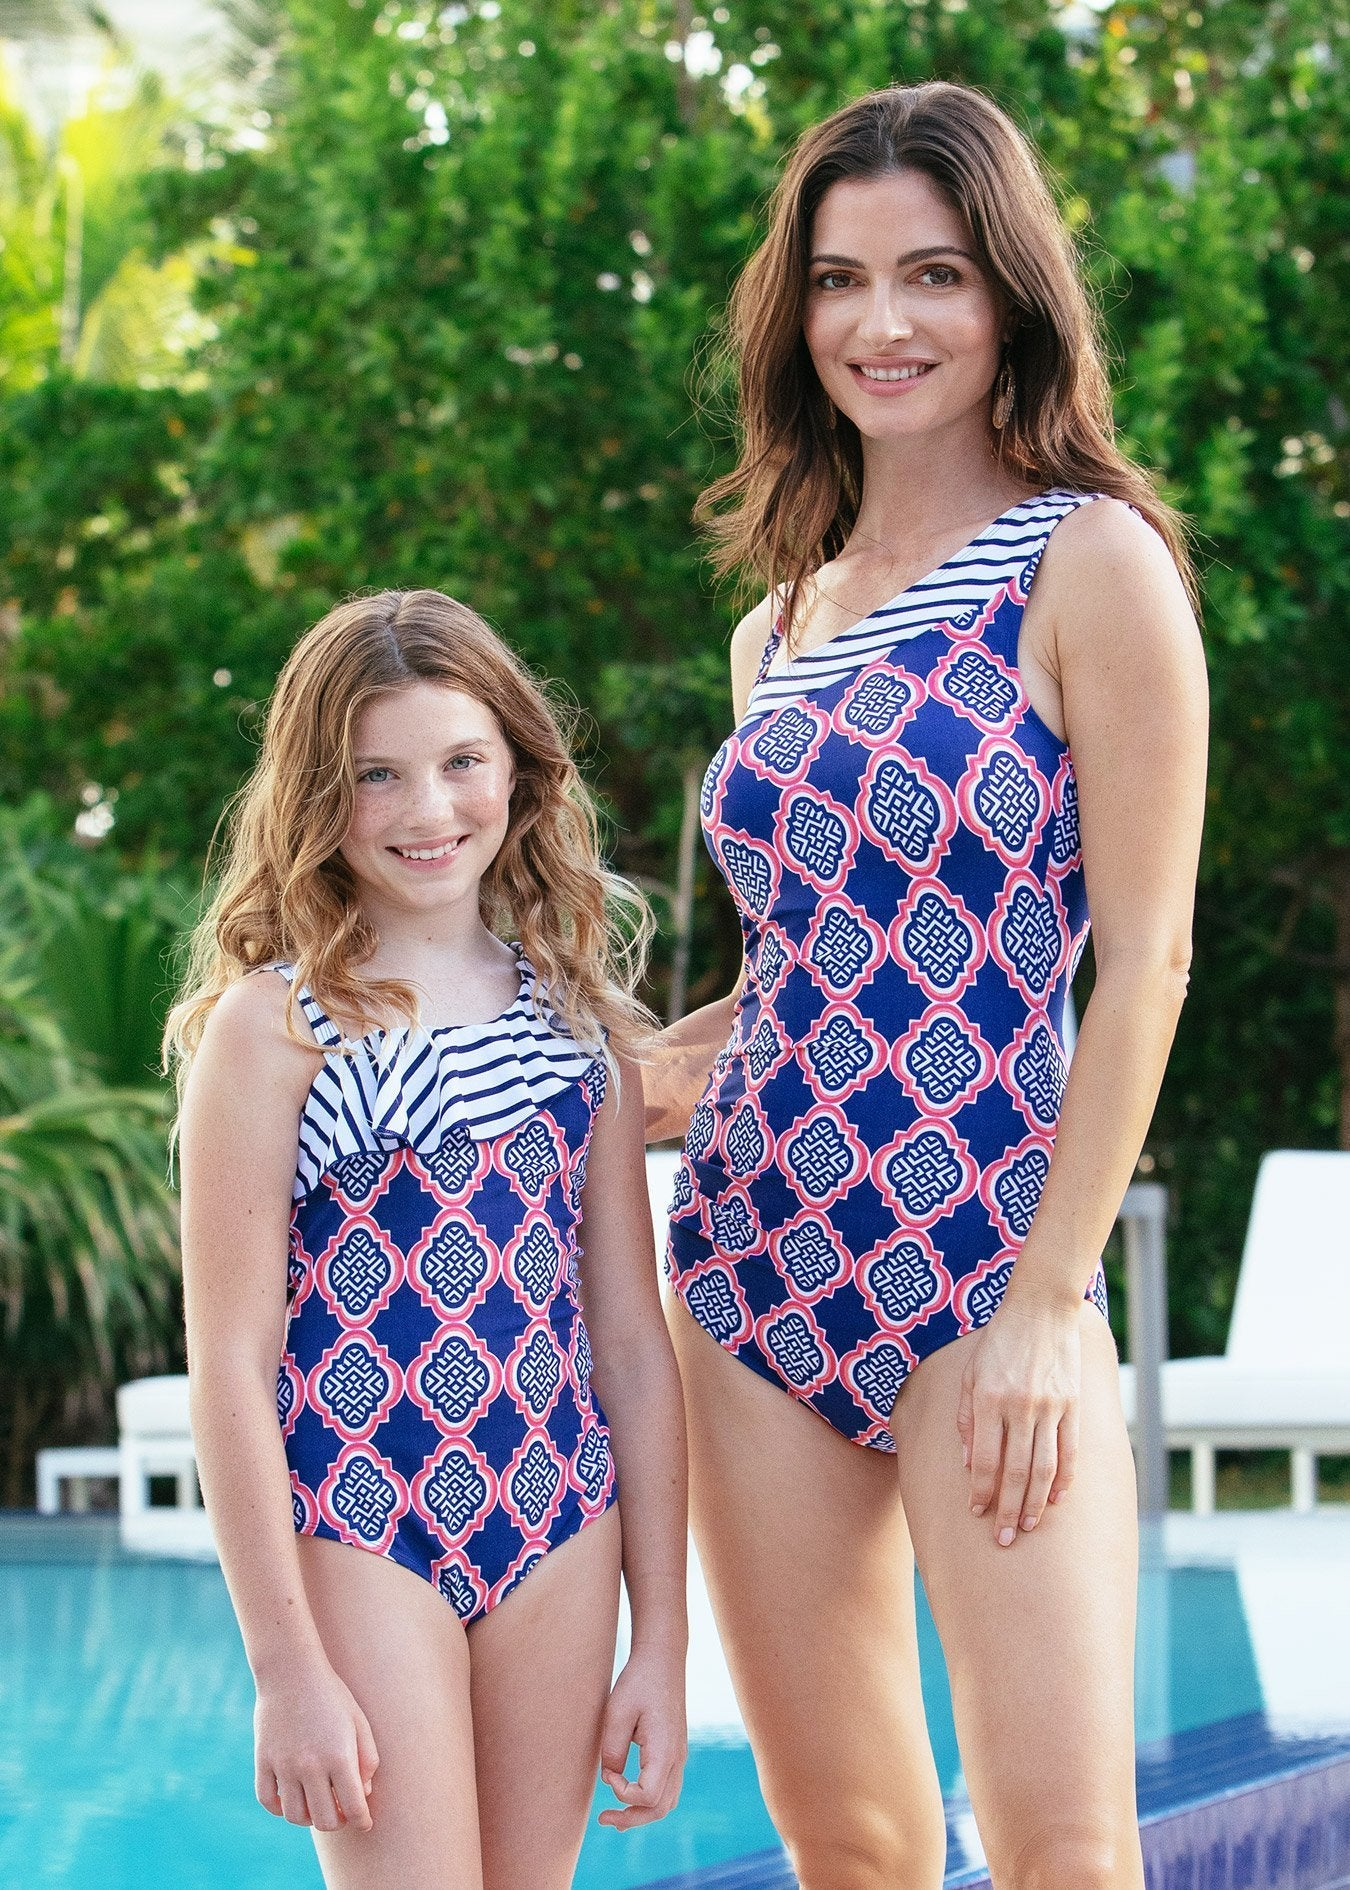 Woman and girl wearing Navy Geo One Piece Swimsuits with UPF 50+ sun protection